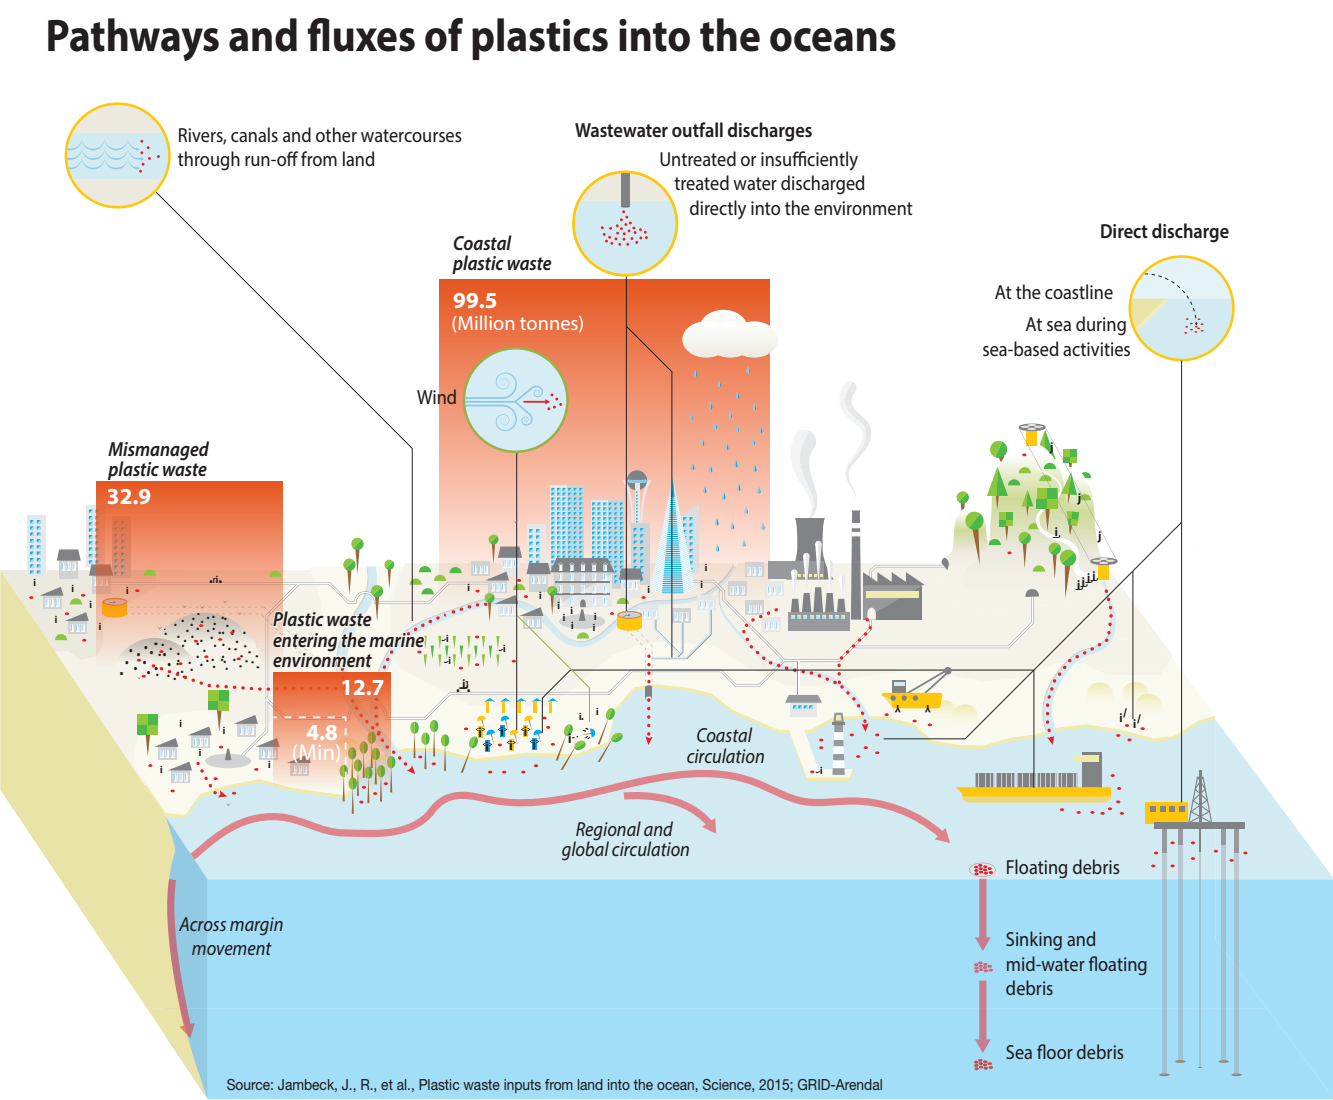 Pathways and fluxes of plastics into the oceans